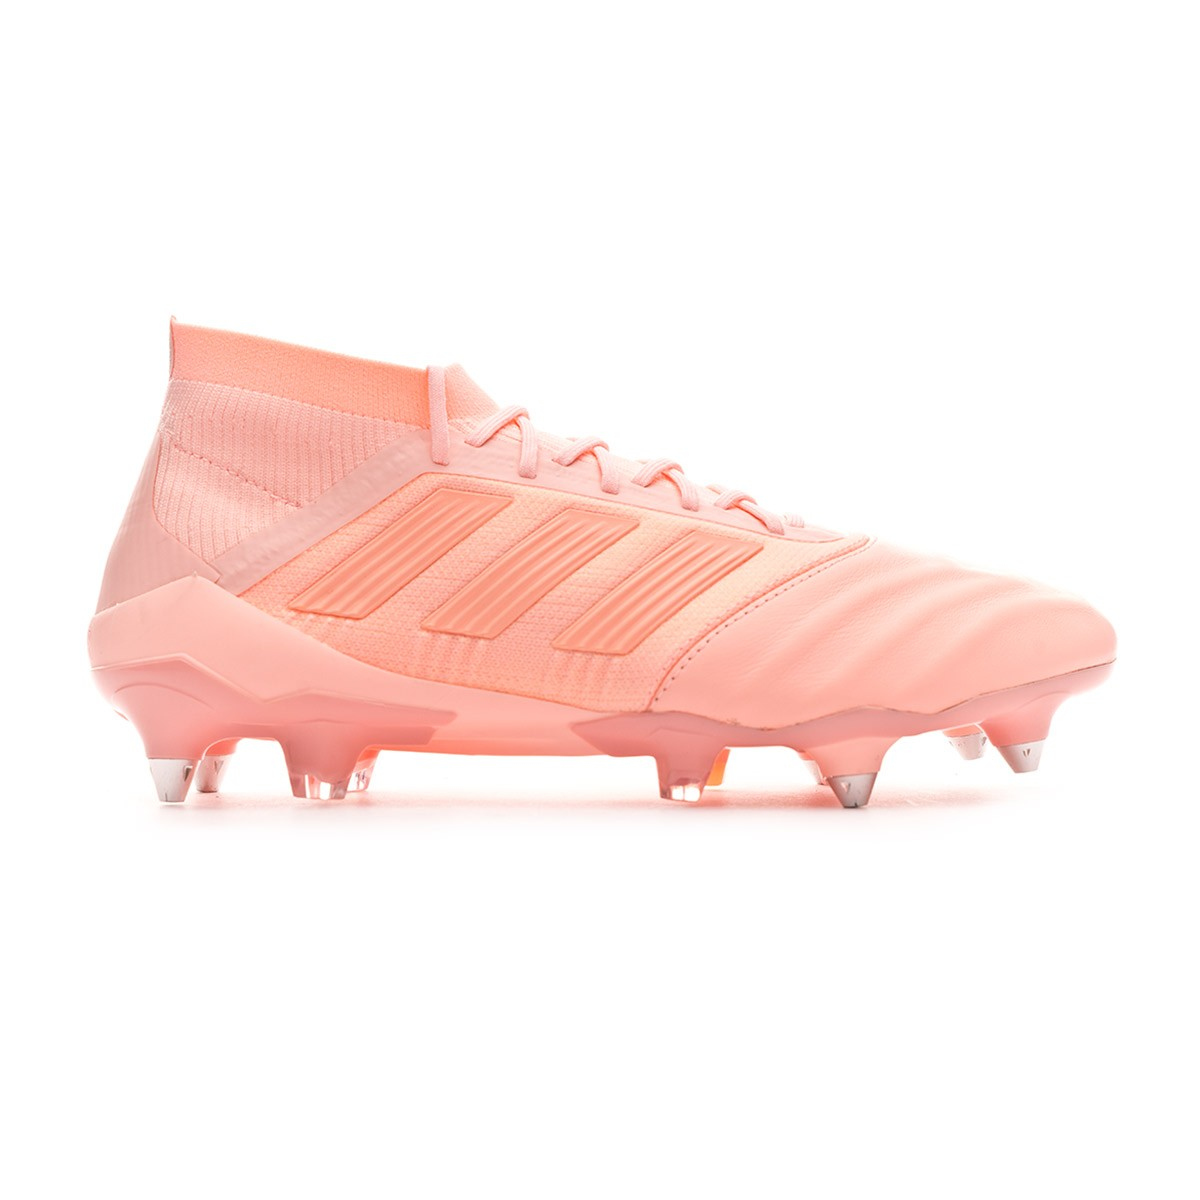 97413d3772c Football Boots adidas Predator 18.1 SG Leather Clear orange-Trace pink -  Football store Fútbol Emotion